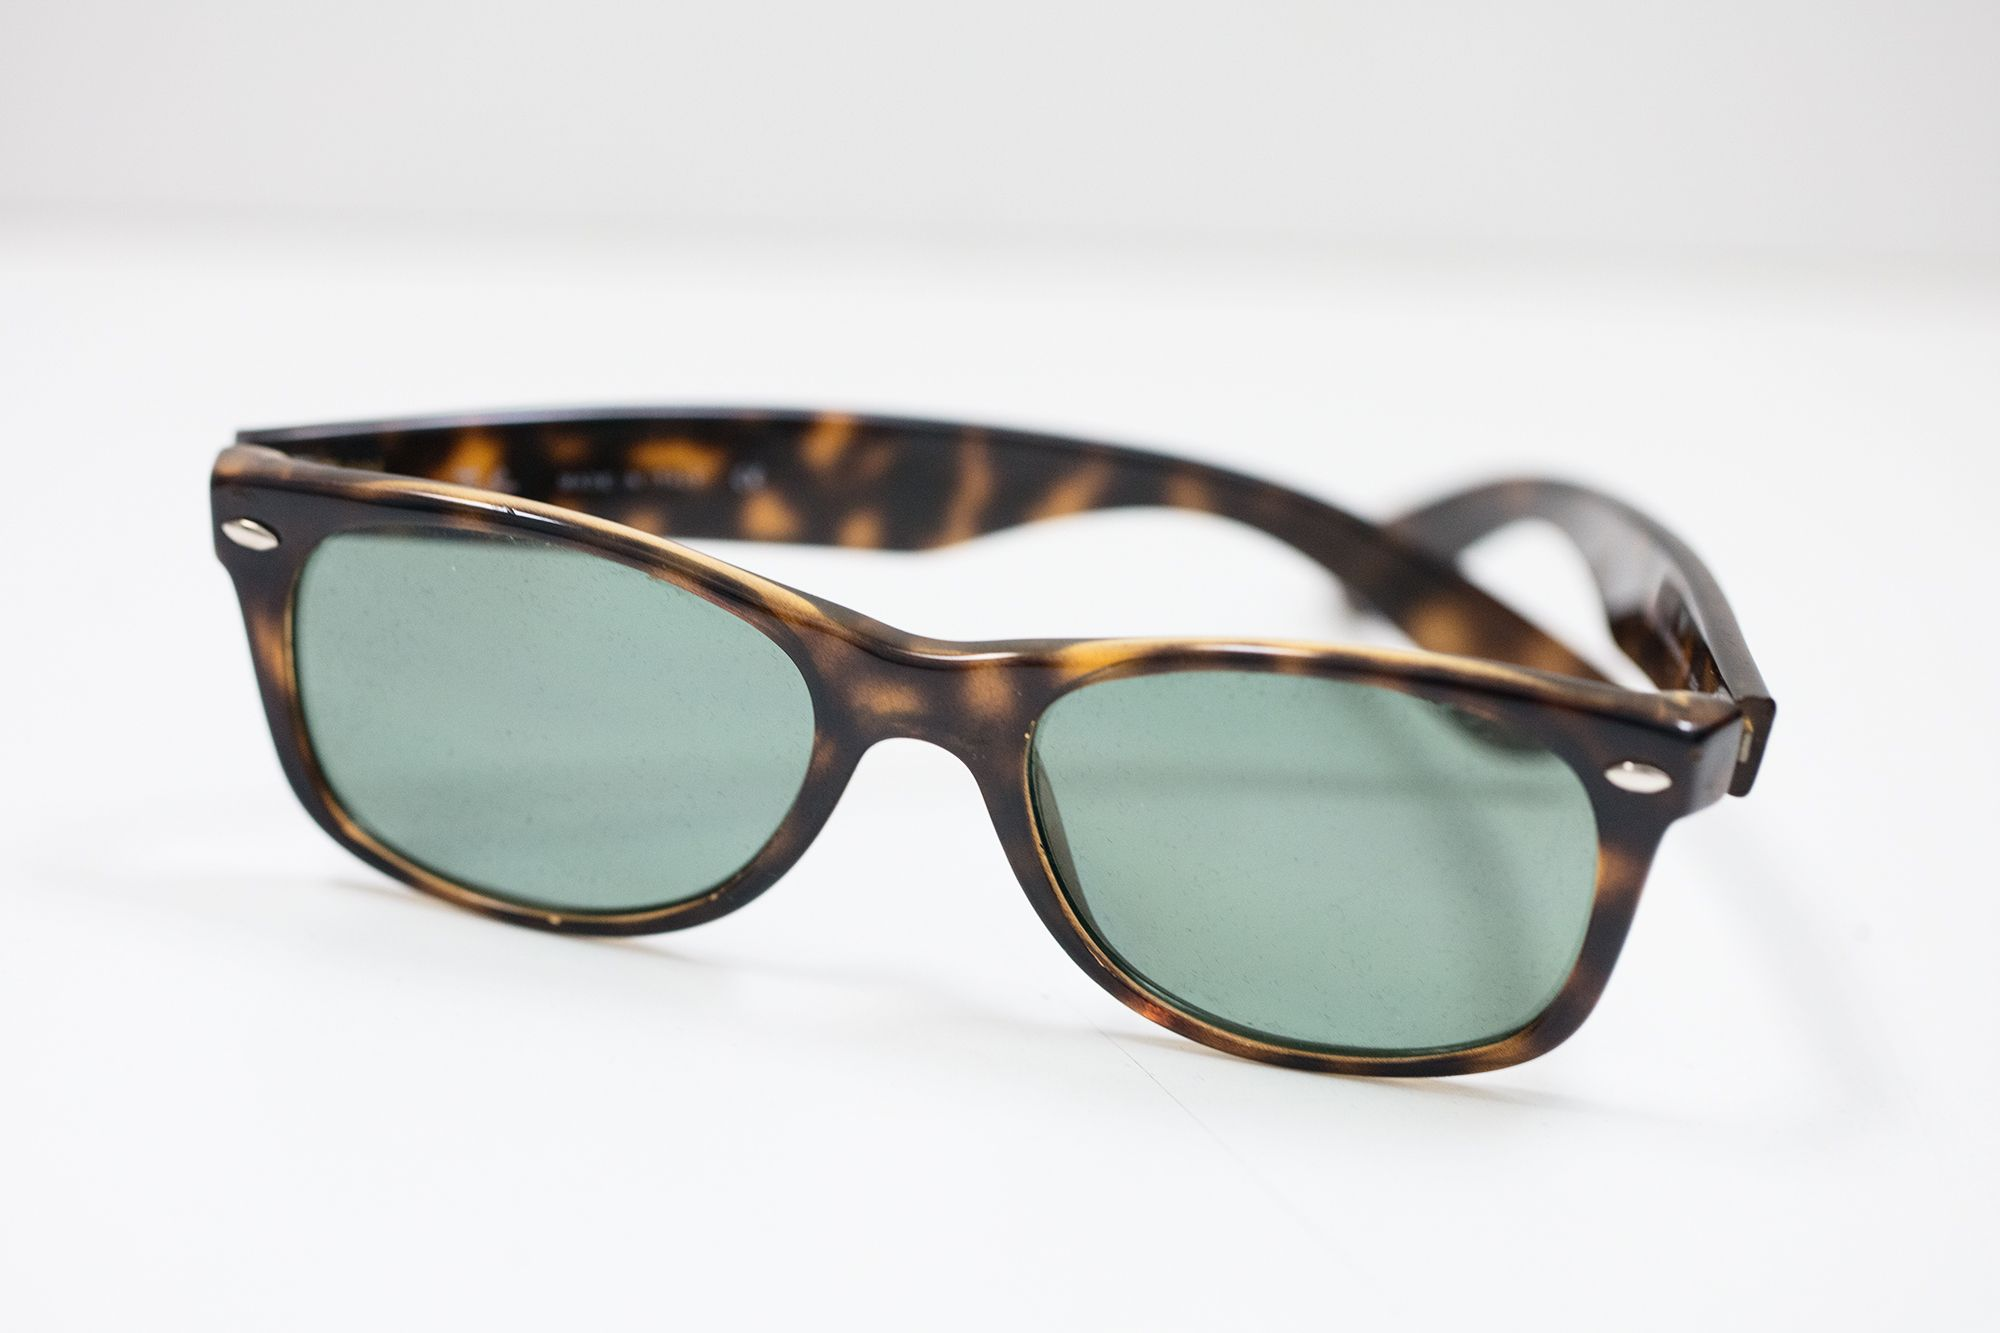 b6a20d0eb Rayban Tortoise Shell Wayfarers with case #A6251826 | Accessories ...